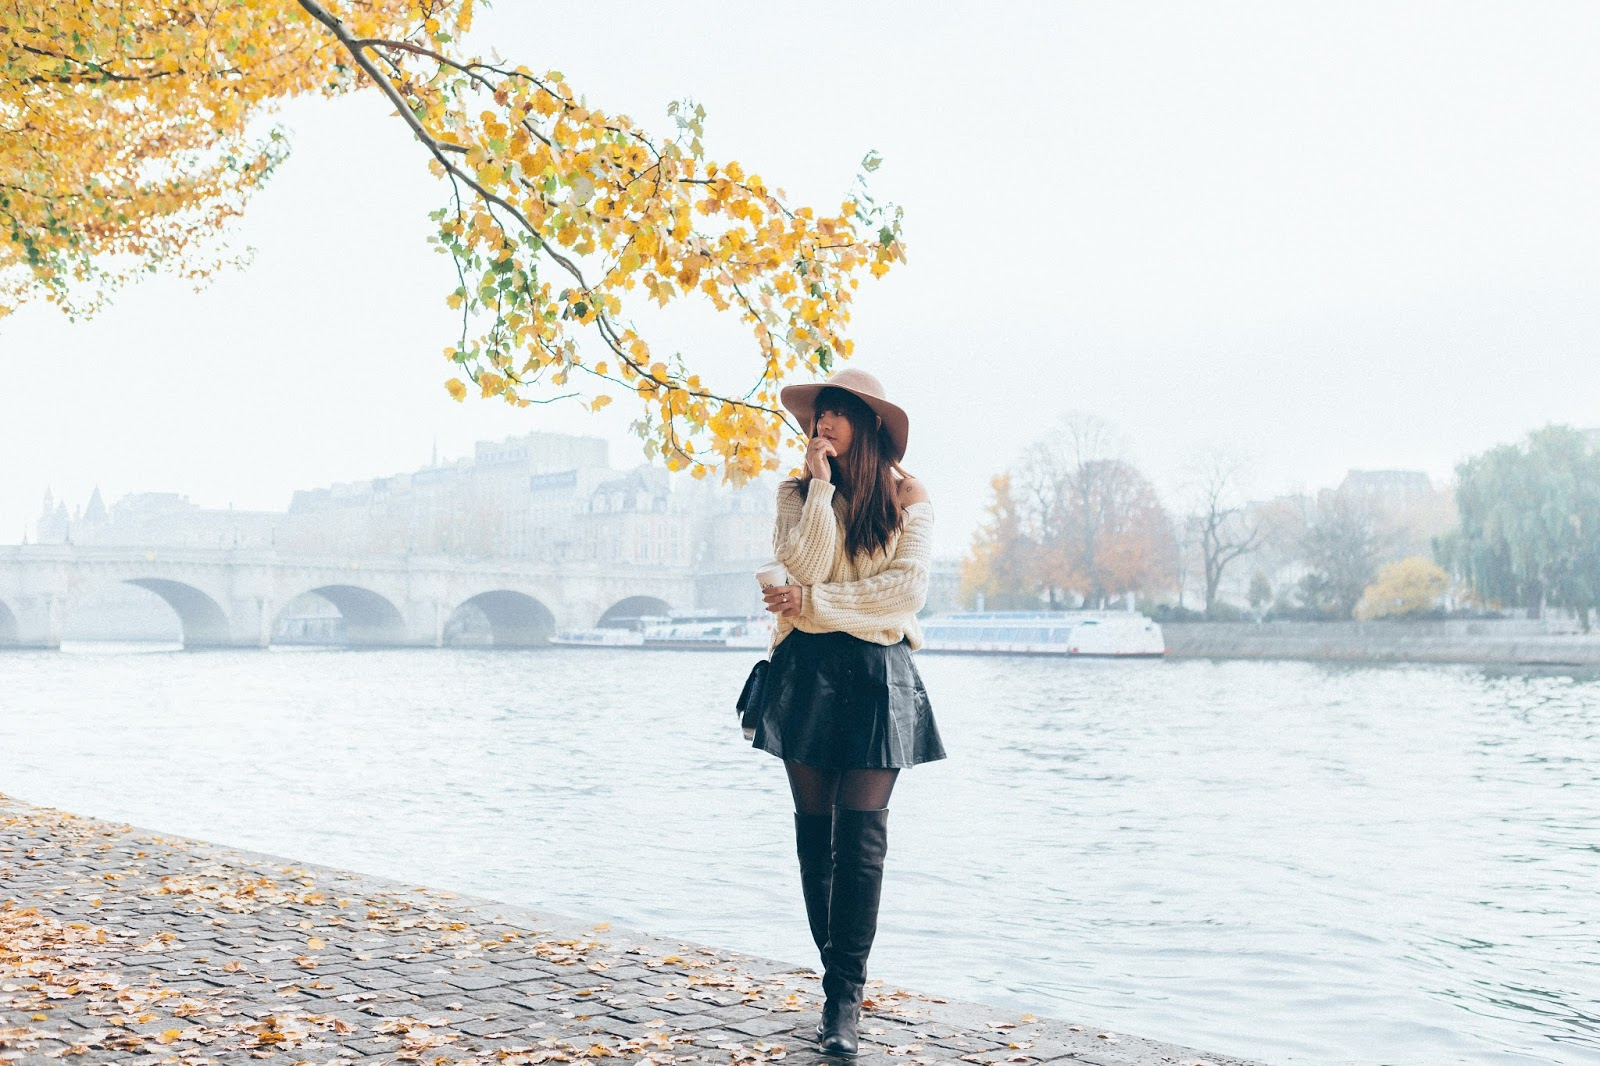 Parisian fashion blogger, Look, Streetstyle, Autumn Look, Fashion photography, Meet me in paree